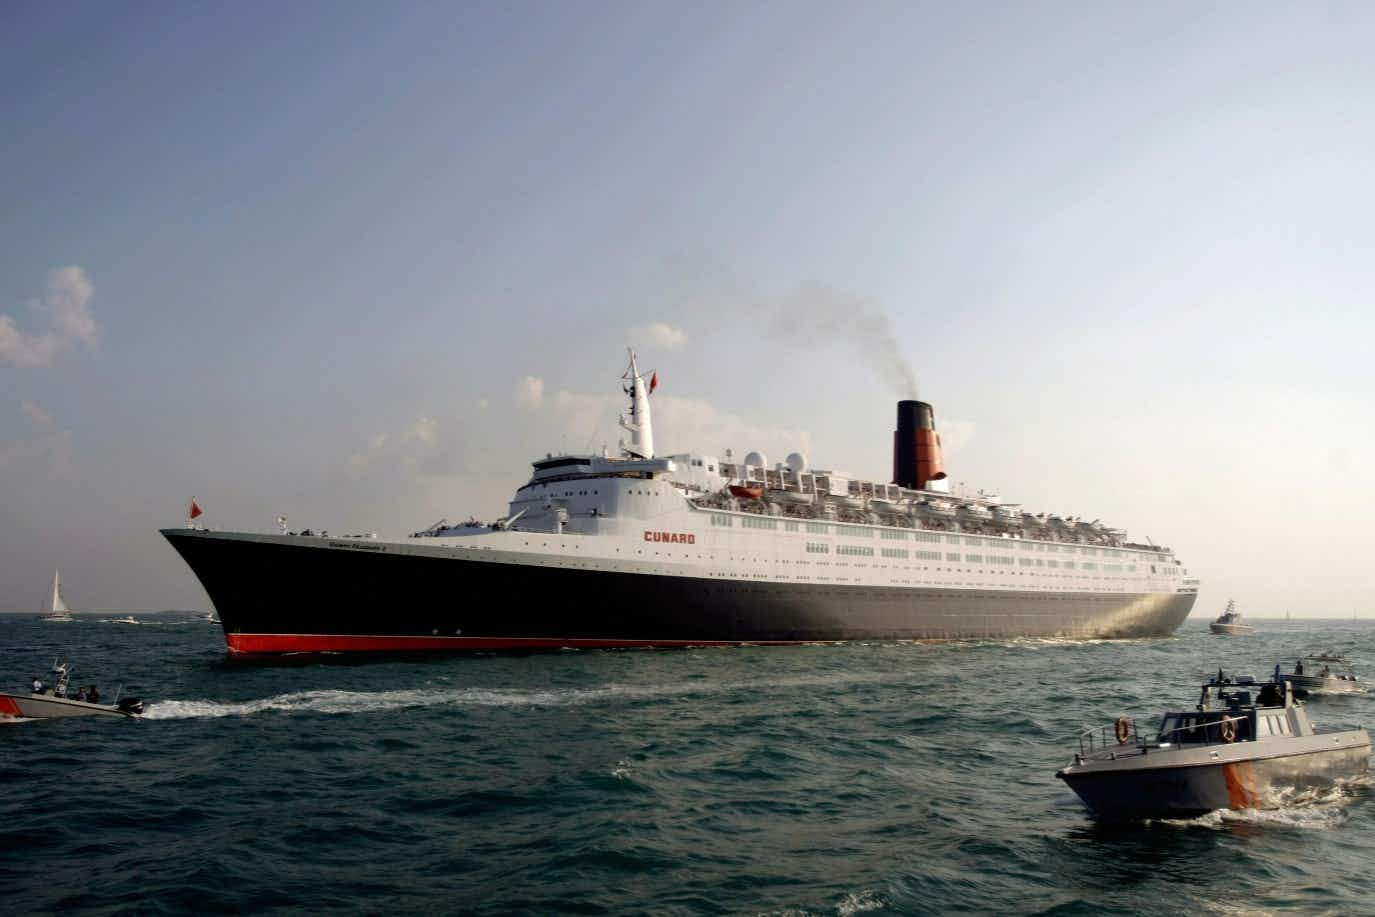 The QE2 cruise ship is to start a new life as a floating hotel in Dubai